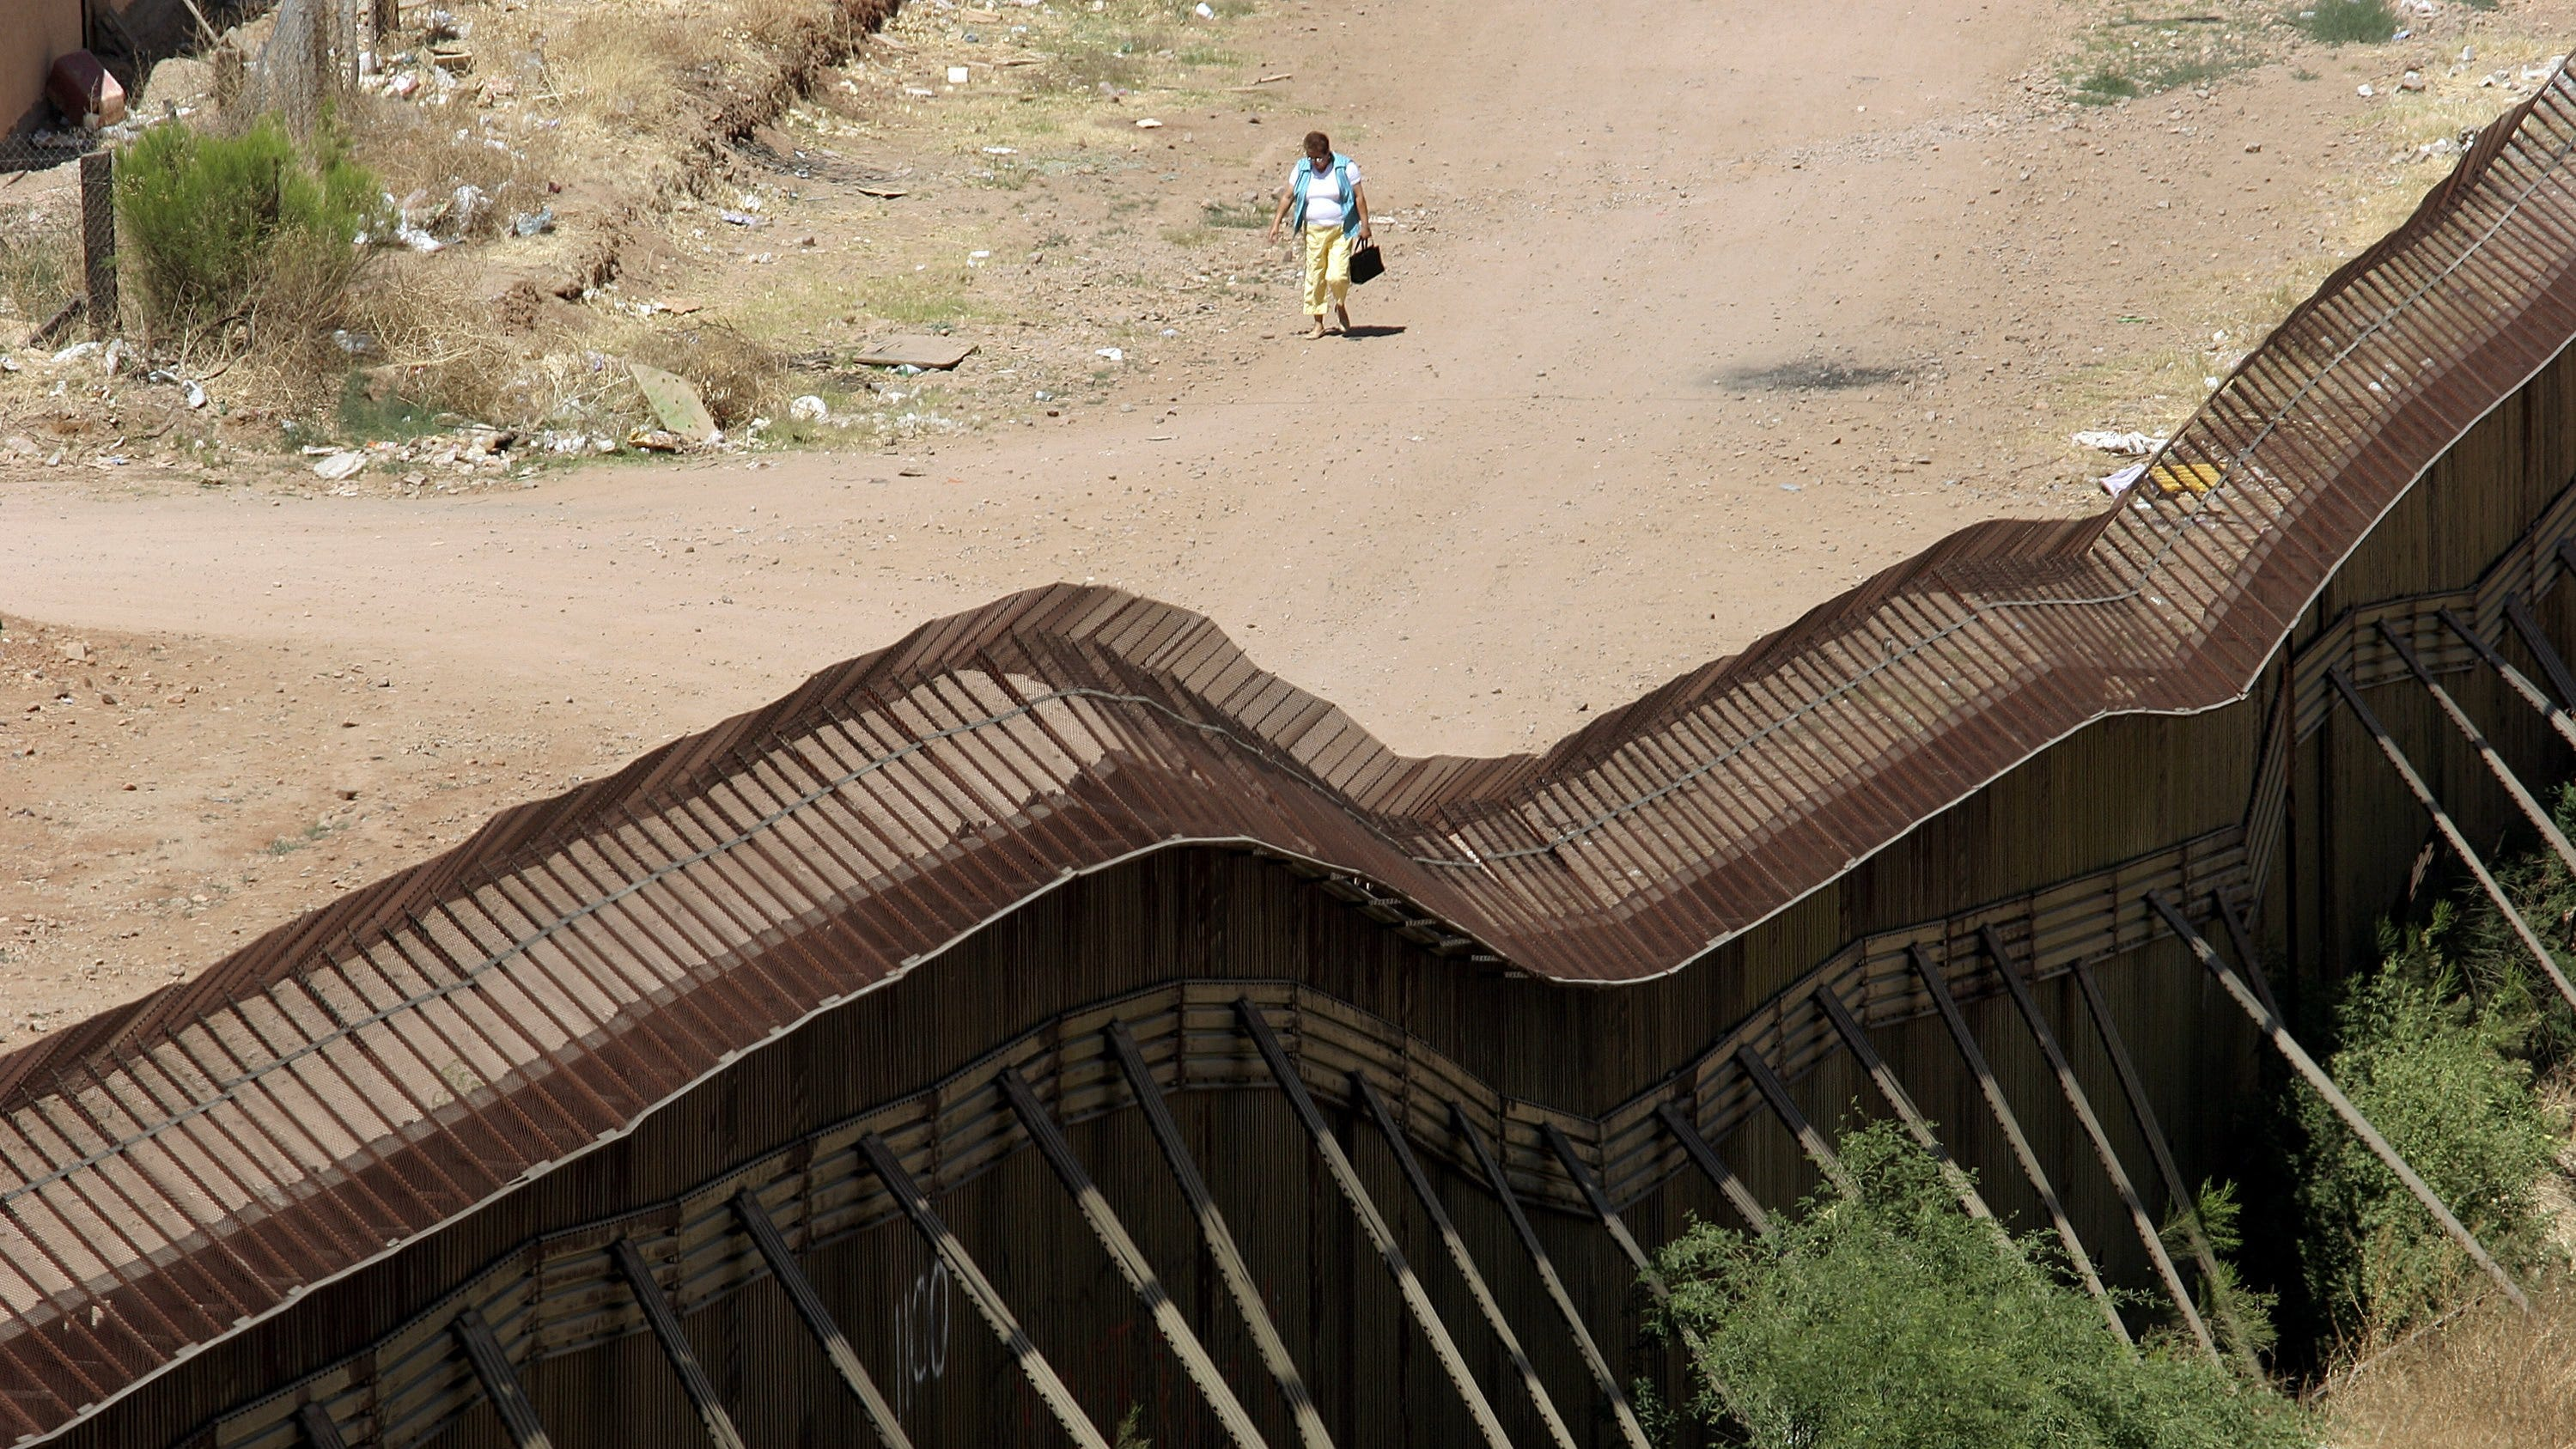 A woman walks along a dirt road on the Mexican side of the border.